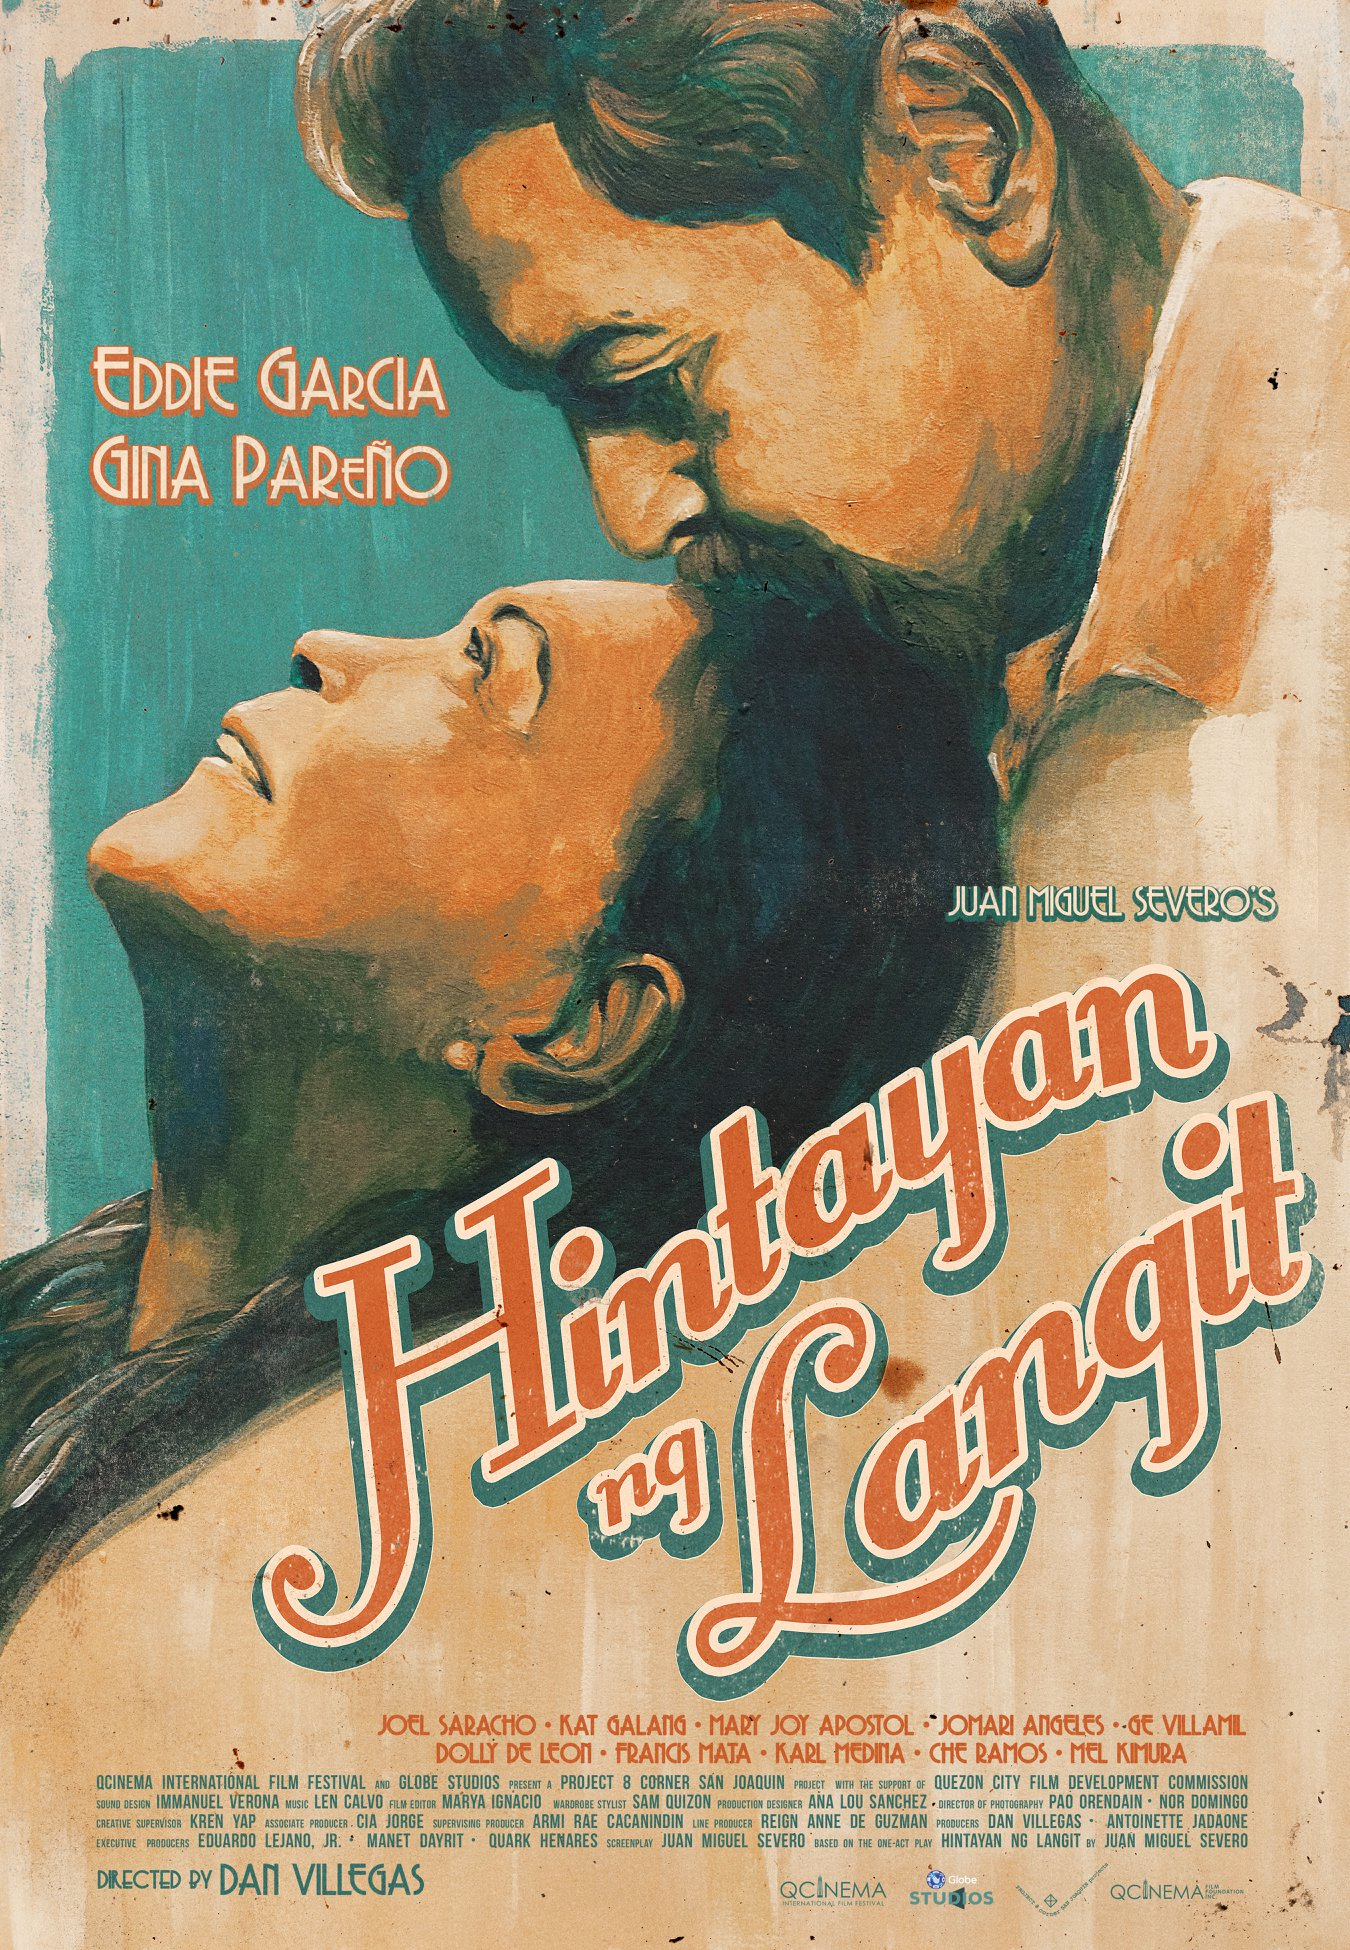 Hintayan Ng Langit movie poster